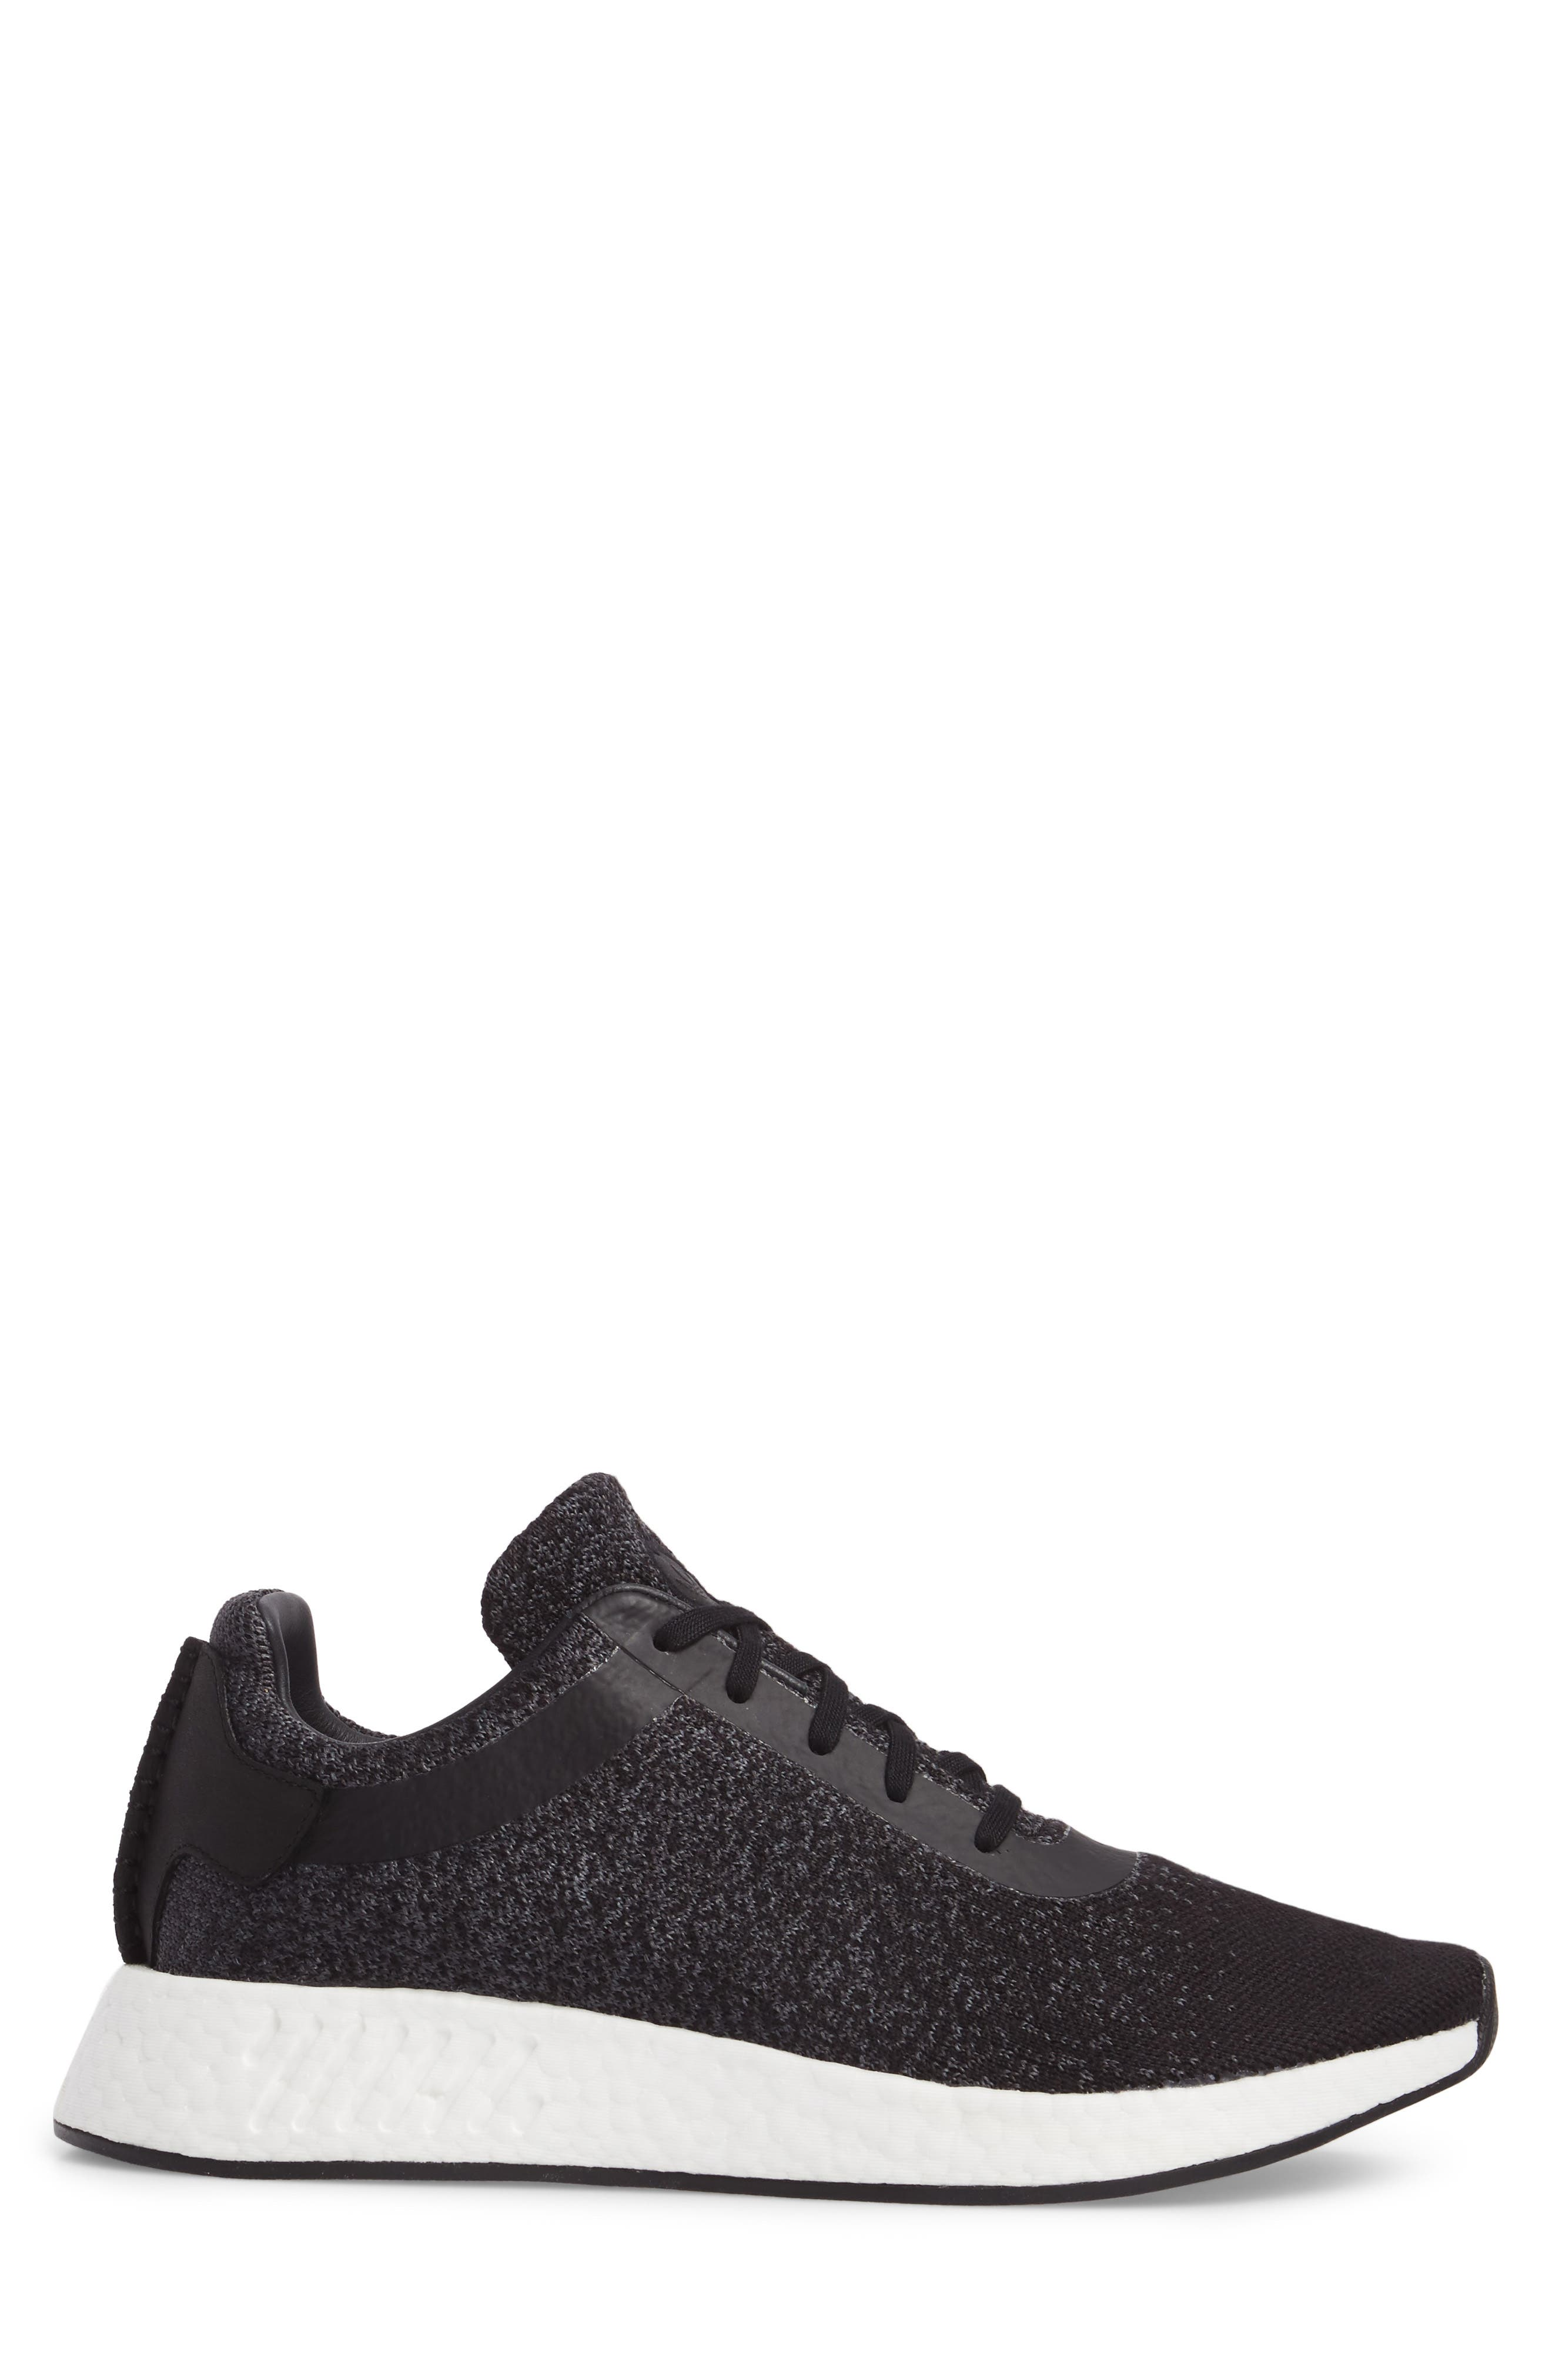 adidas x wings + horns Primeknit NMD_R2 Sneaker,                             Alternate thumbnail 3, color,                             001